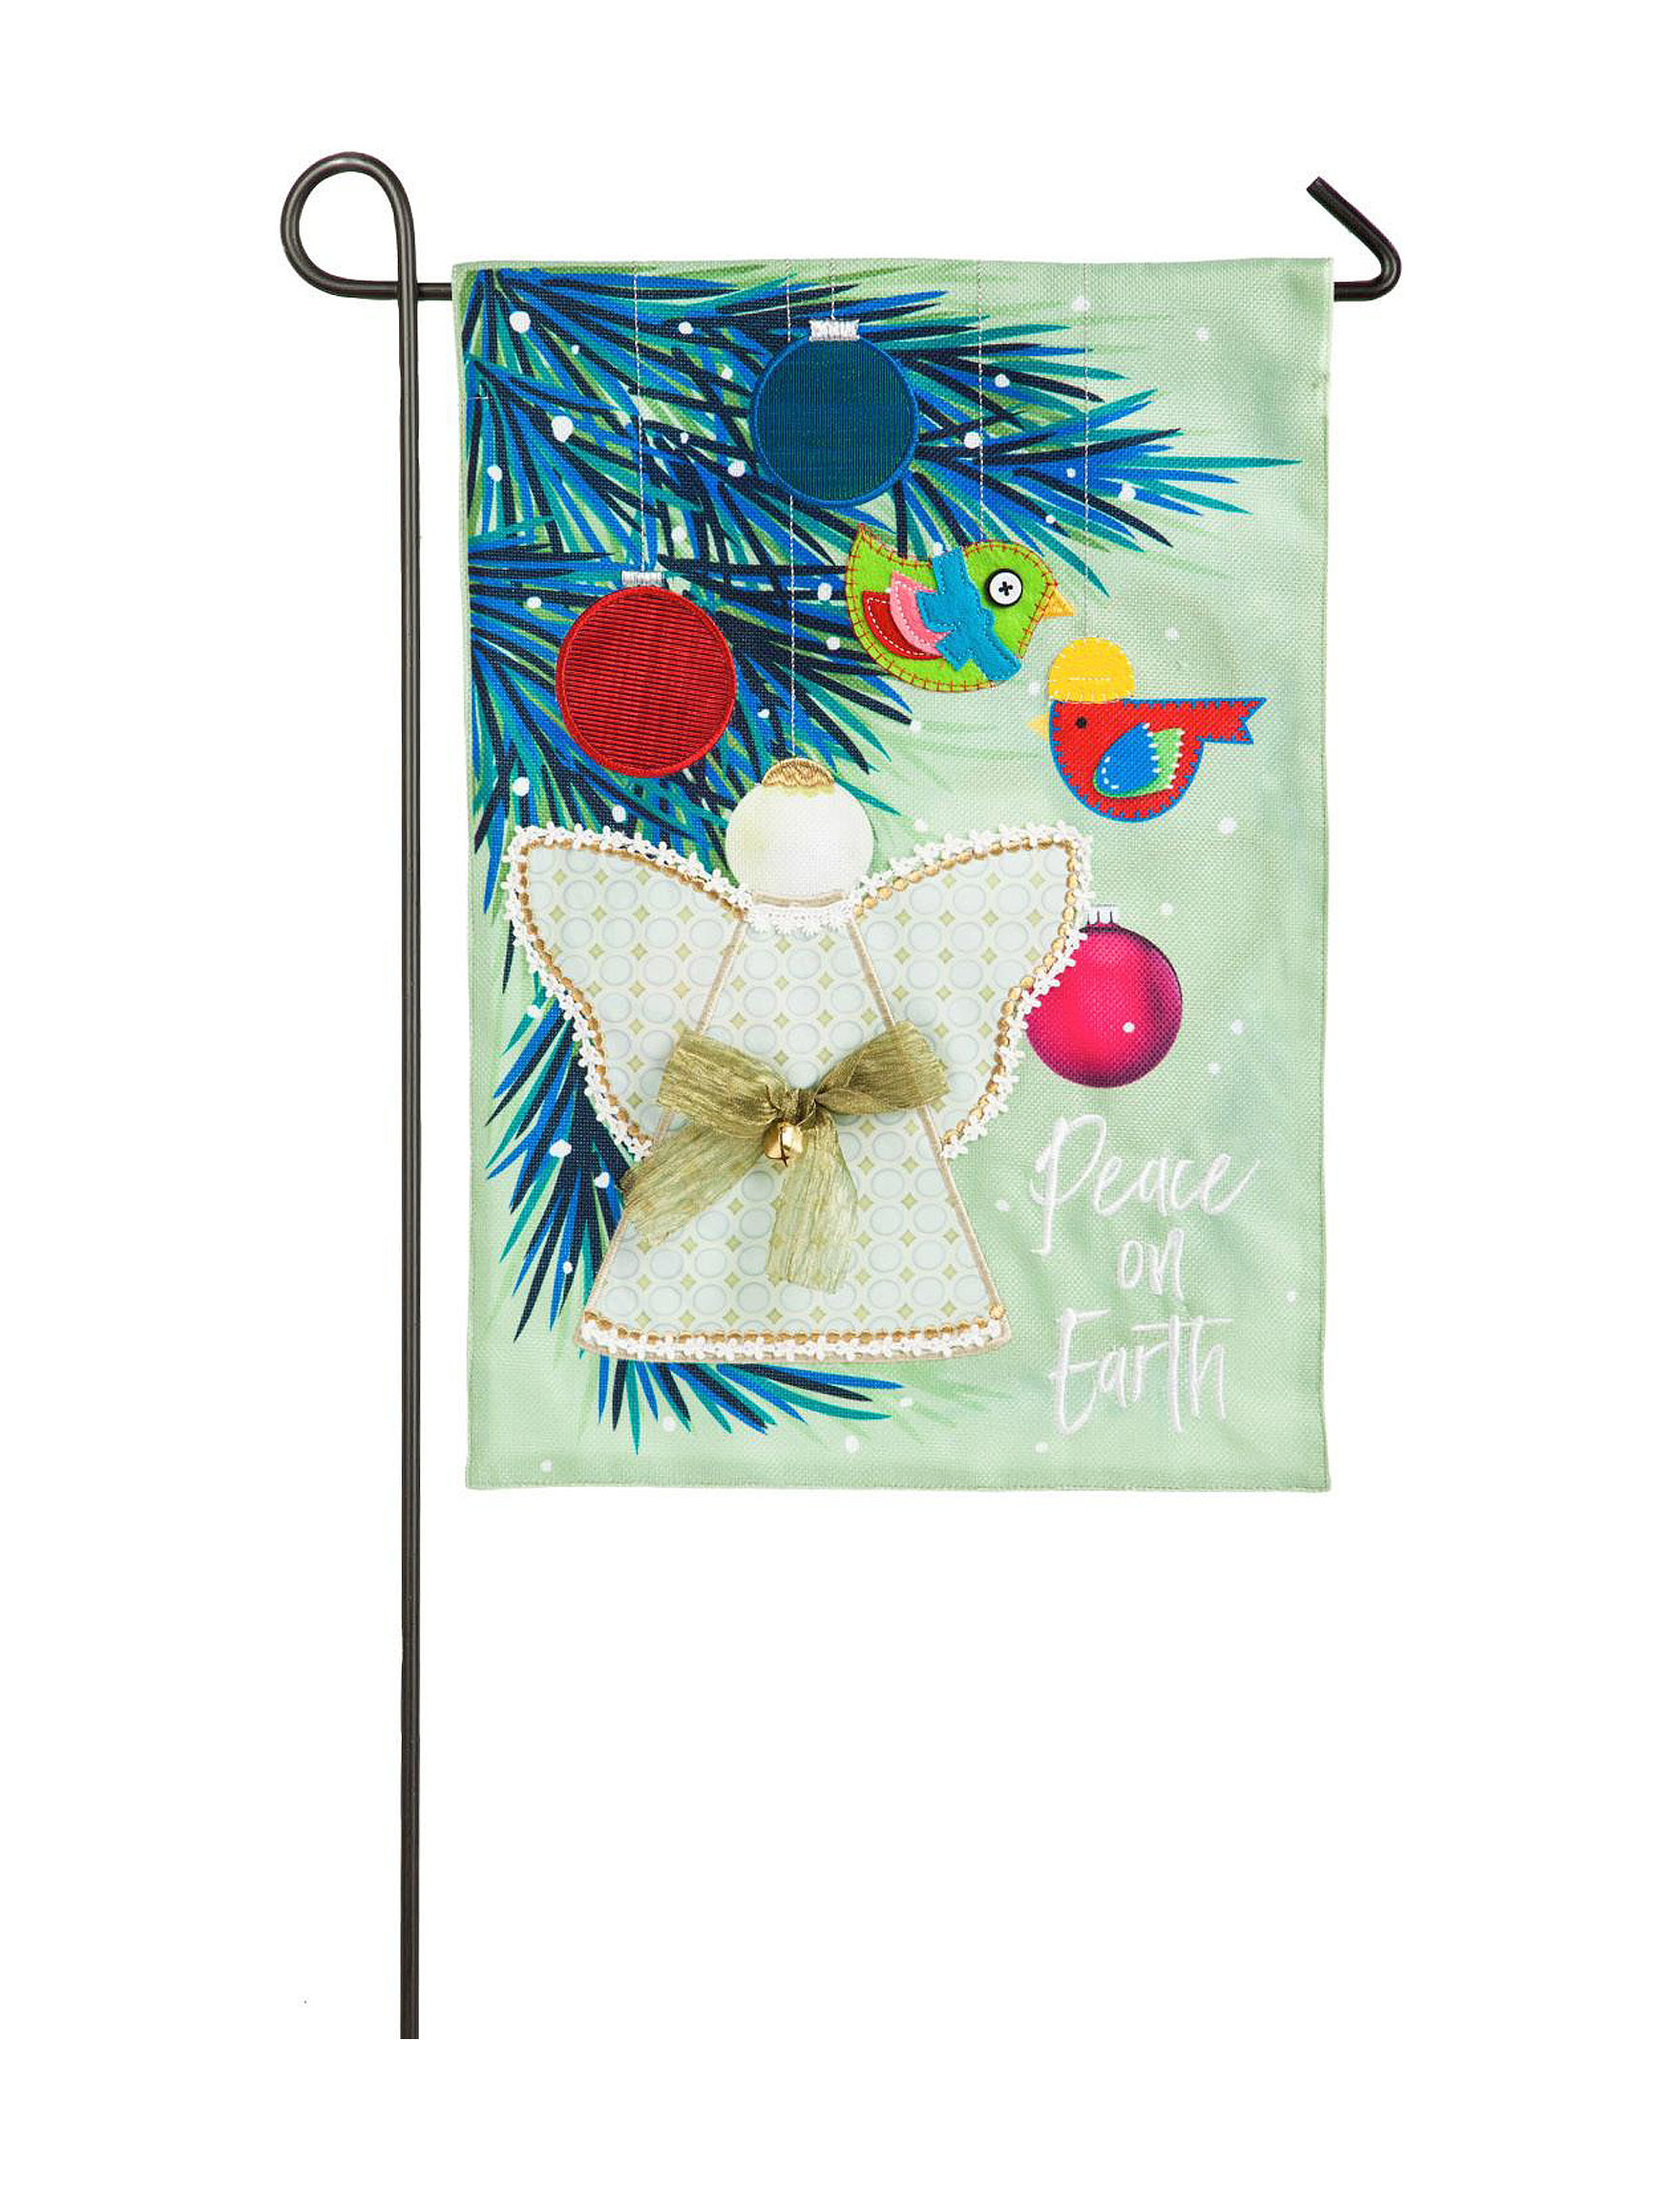 Evergreen Multi Flags & Flag Hardware Outdoor Decor